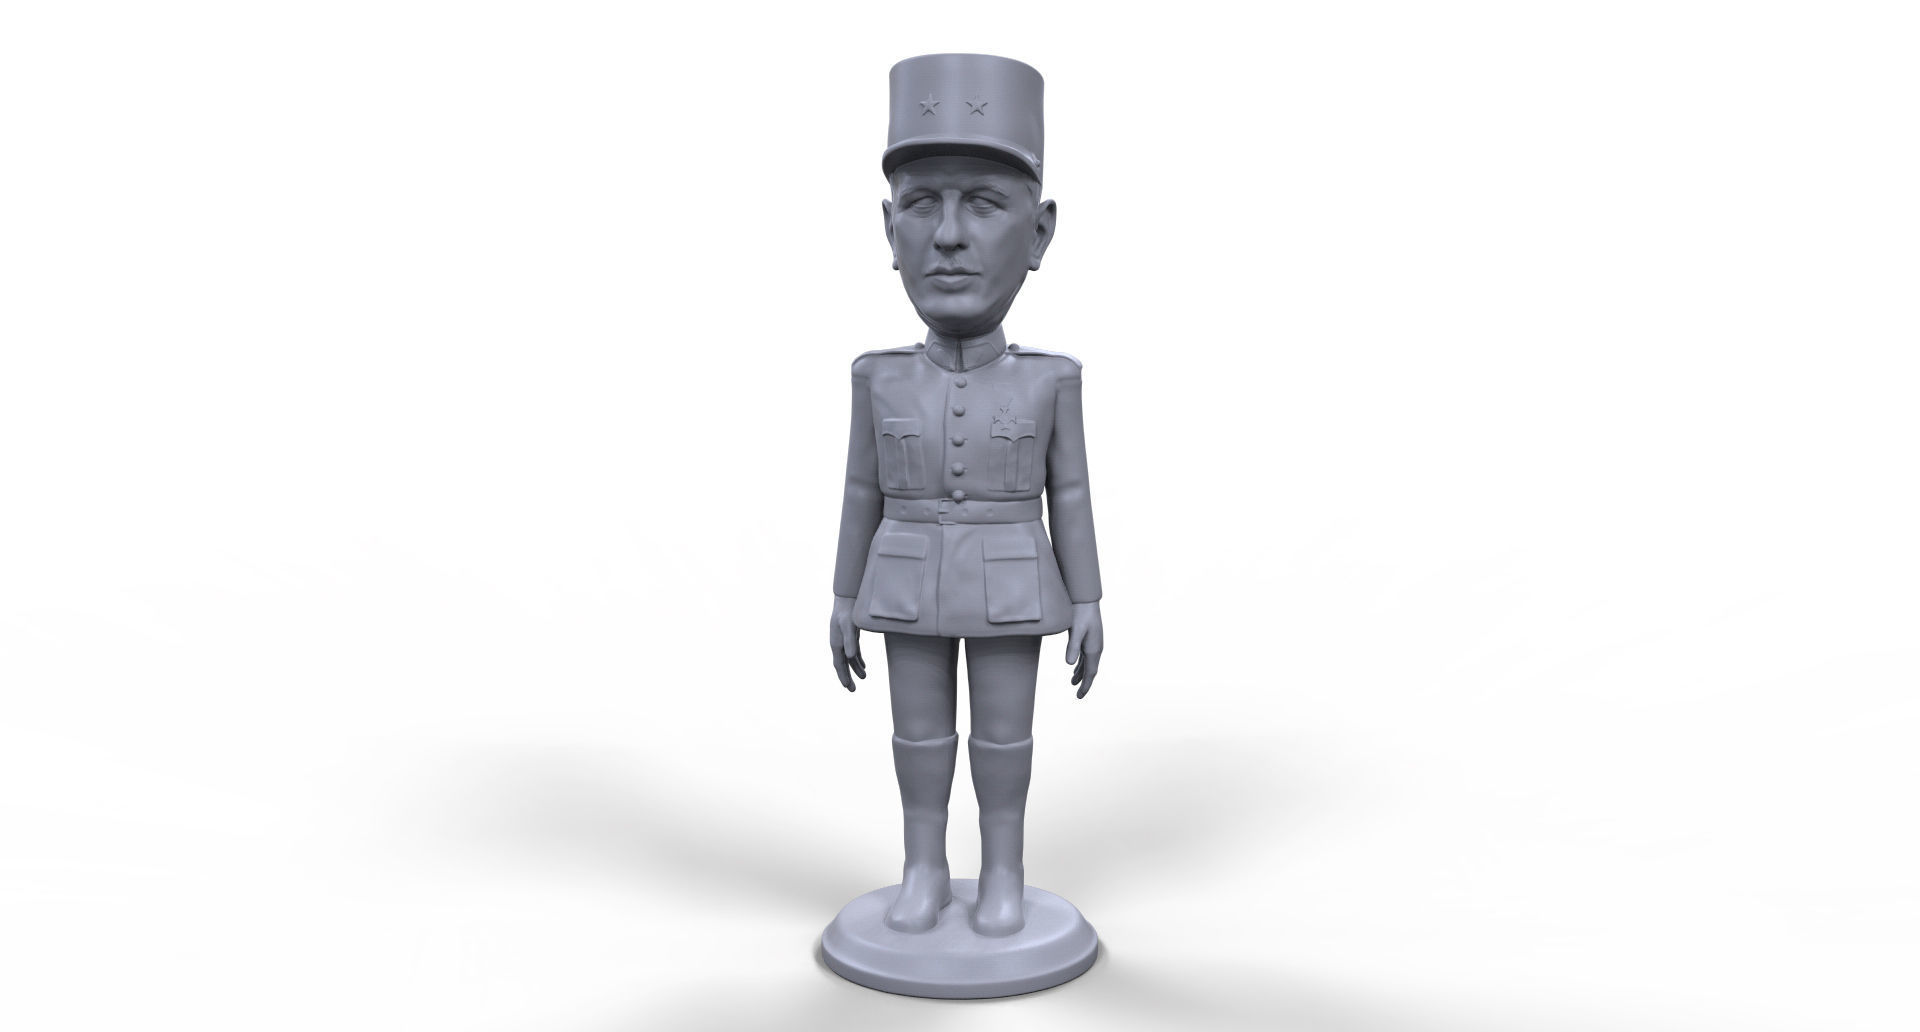 Charles De Gaulle stylized high quality 3D printable miniature